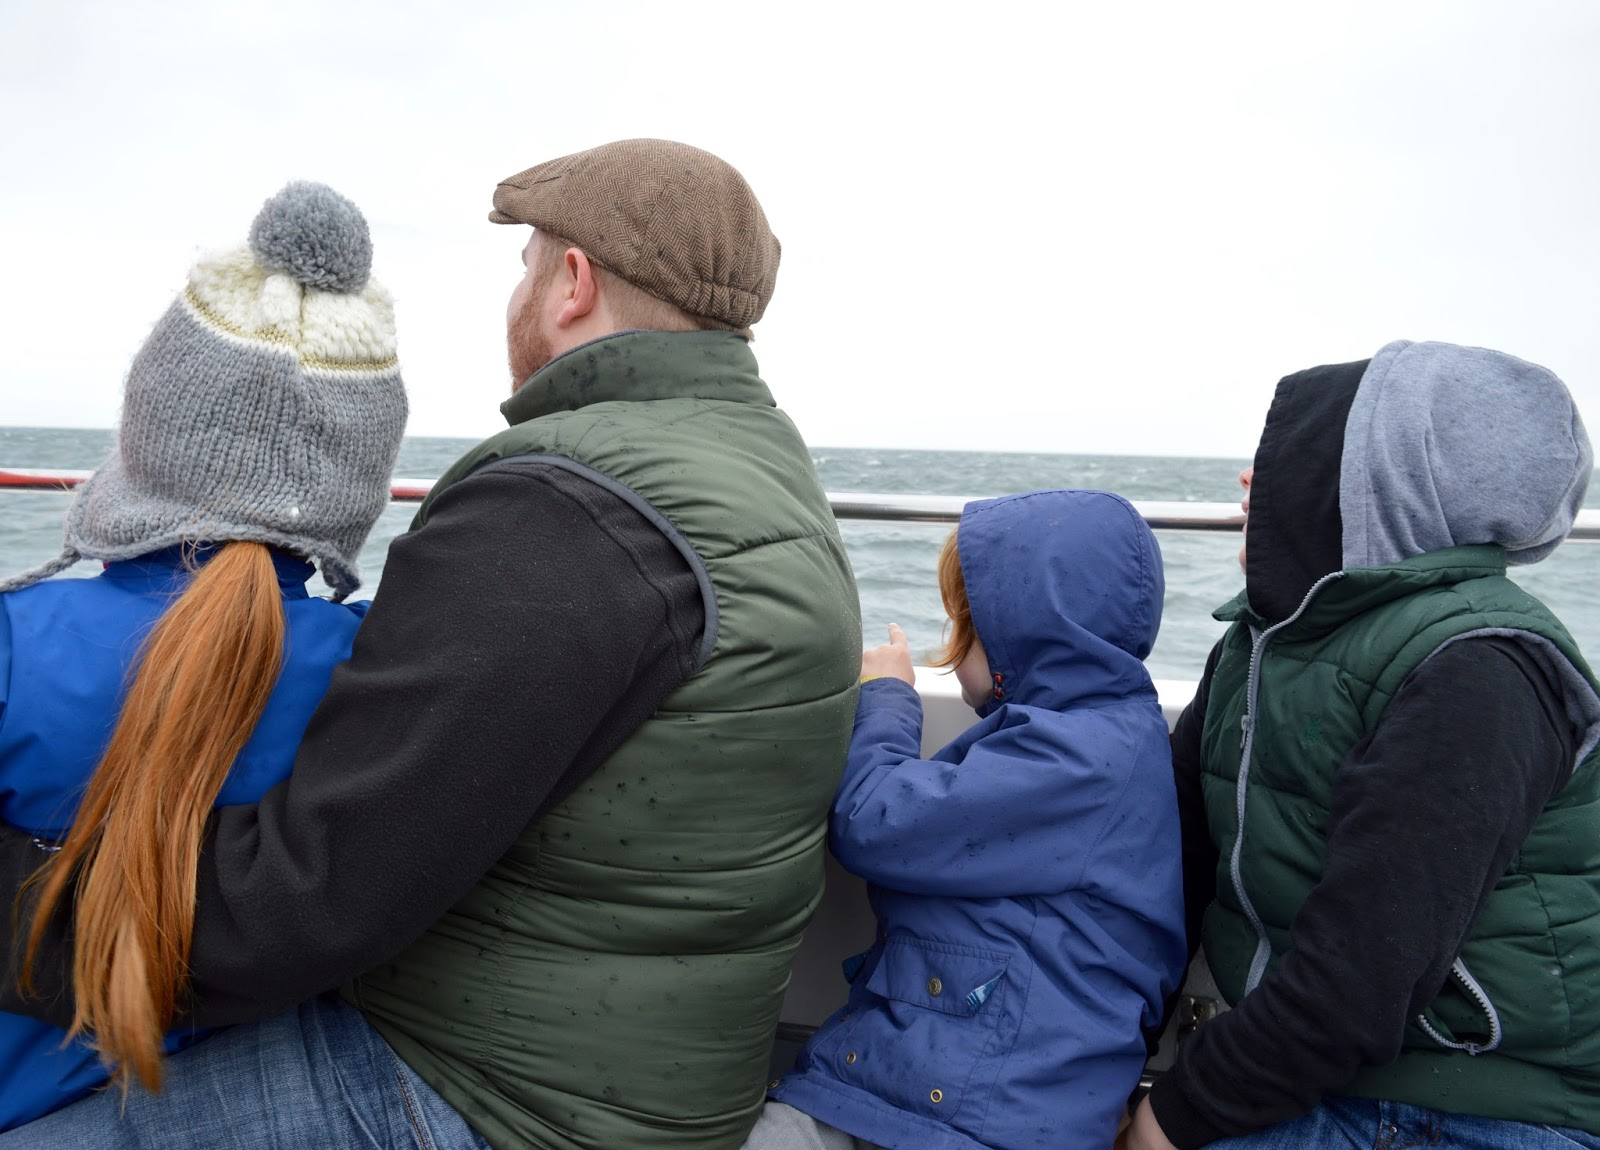 Farne Island Boat Trips with Serenity | A review and what to expect with kids - on board